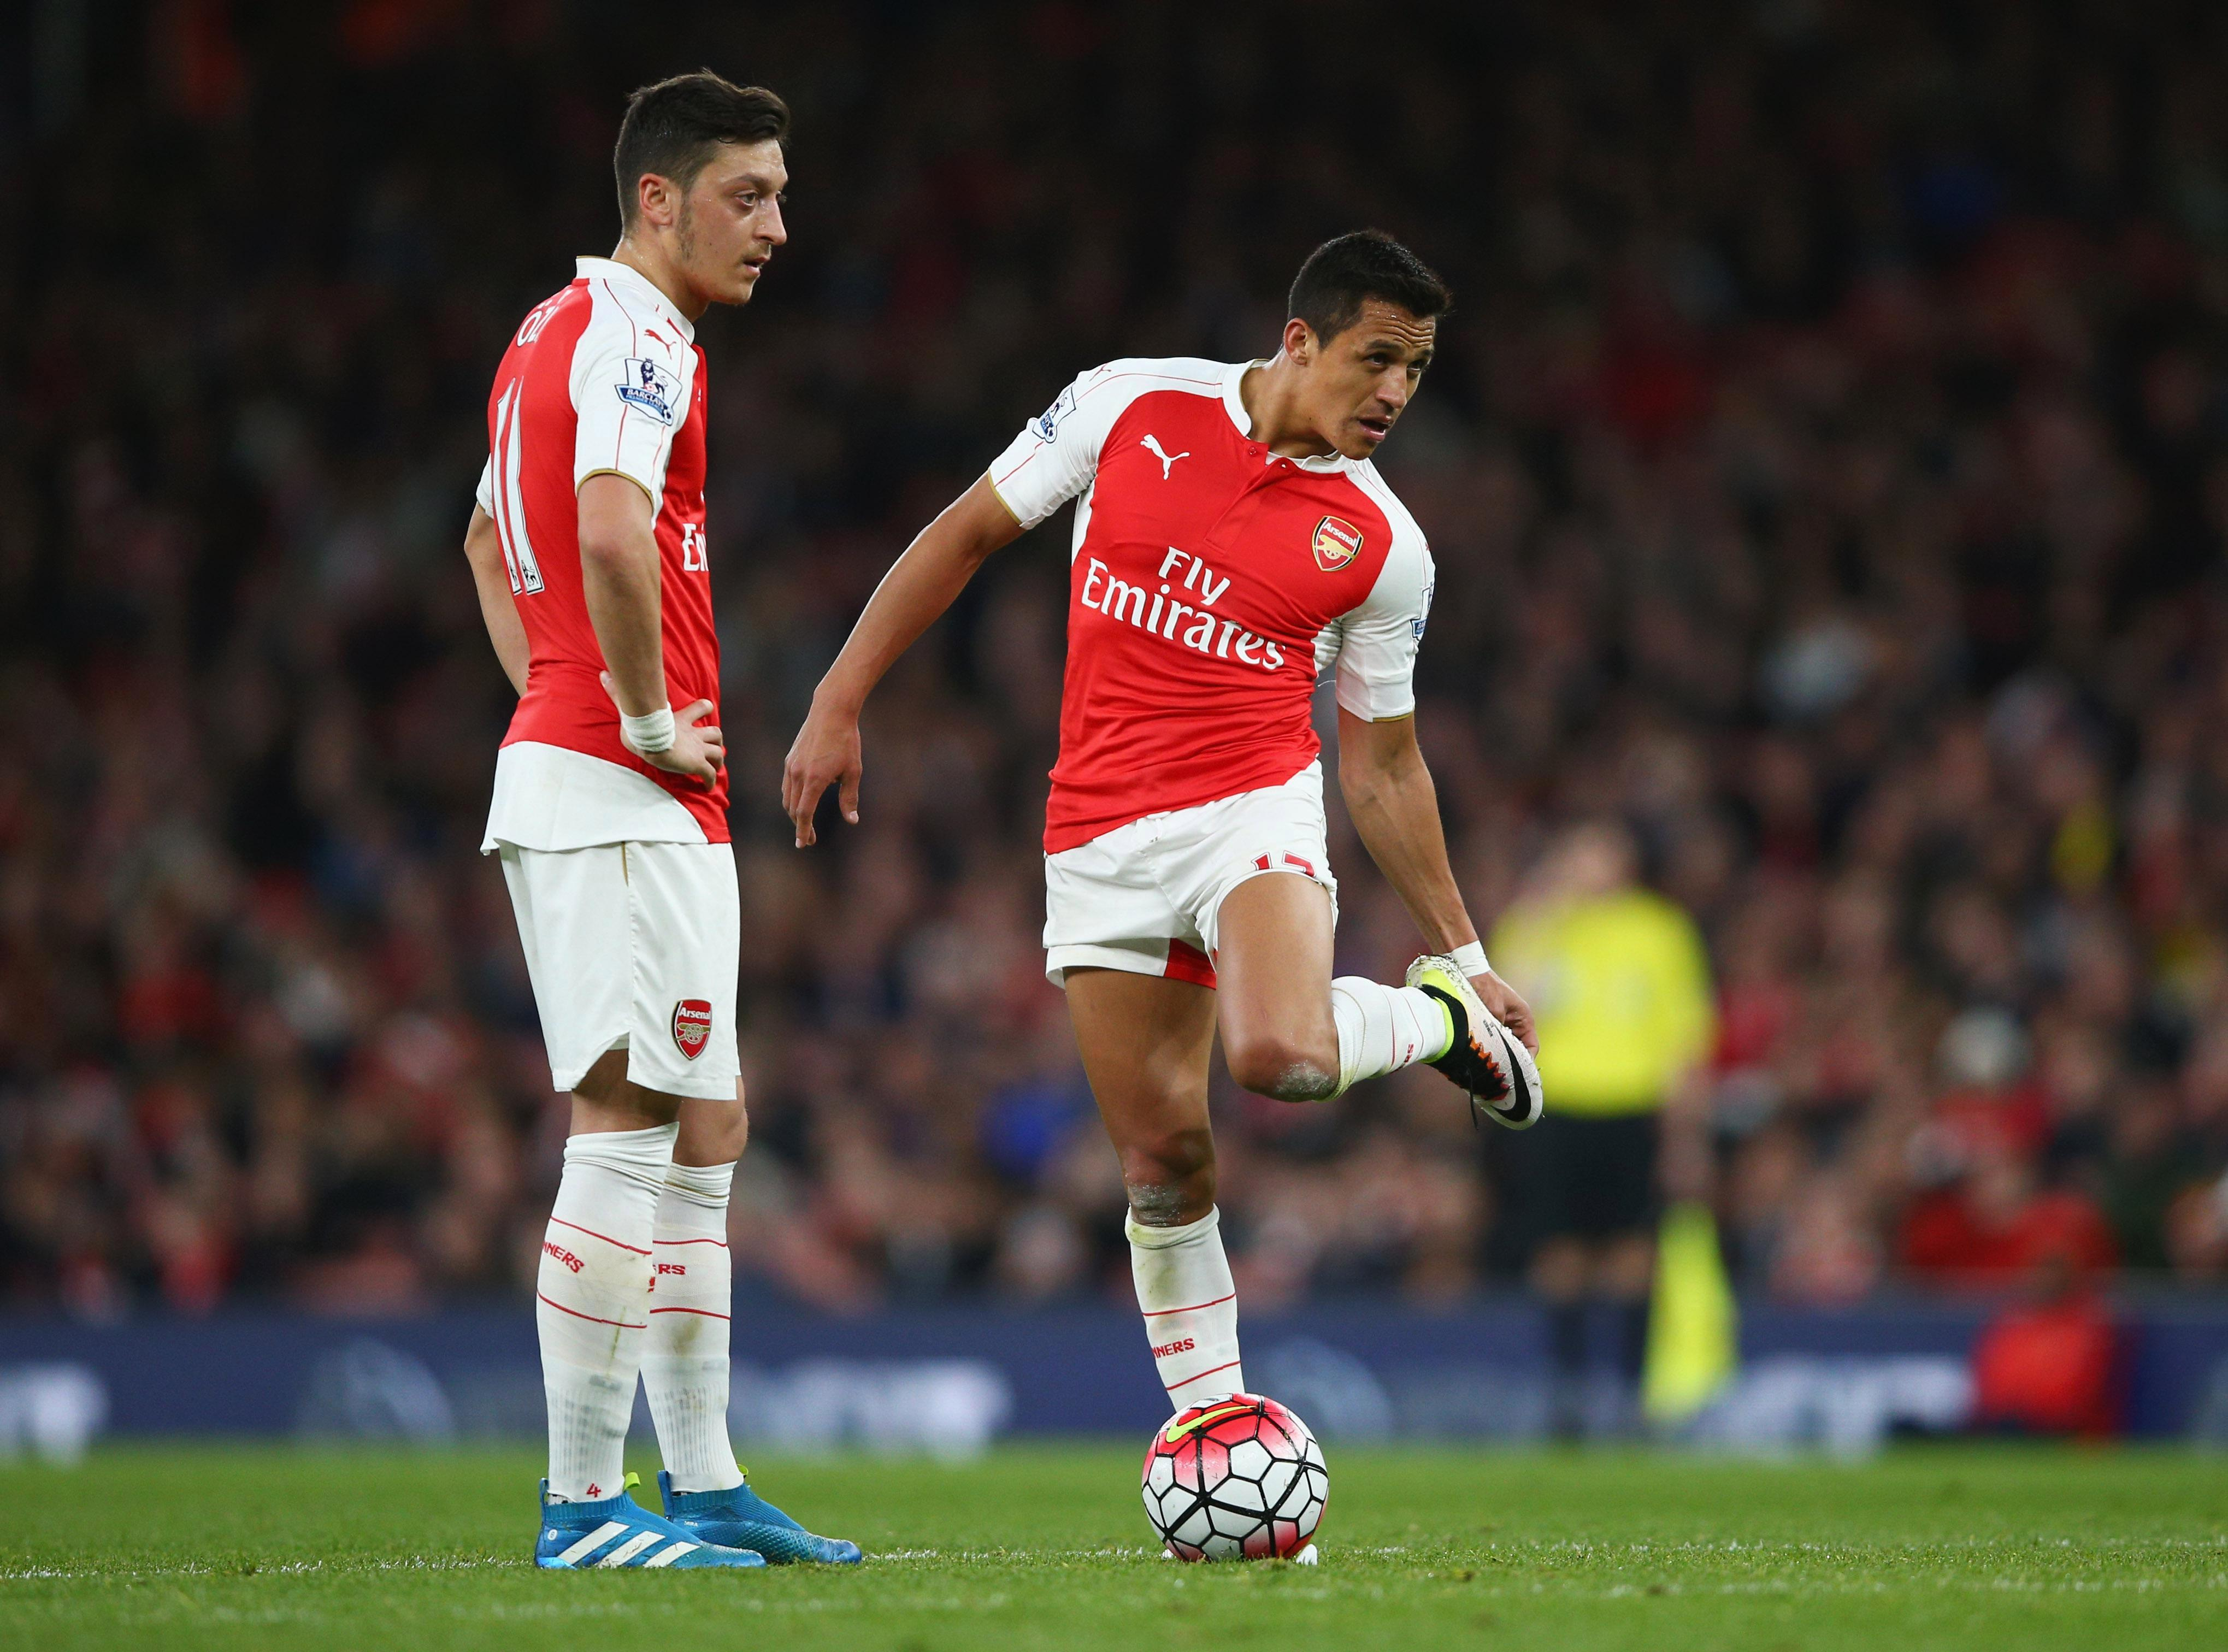 Arsenal are giving fans a glimpse of the future without contract rebels Alexis Sanchez and Mesut Ozil